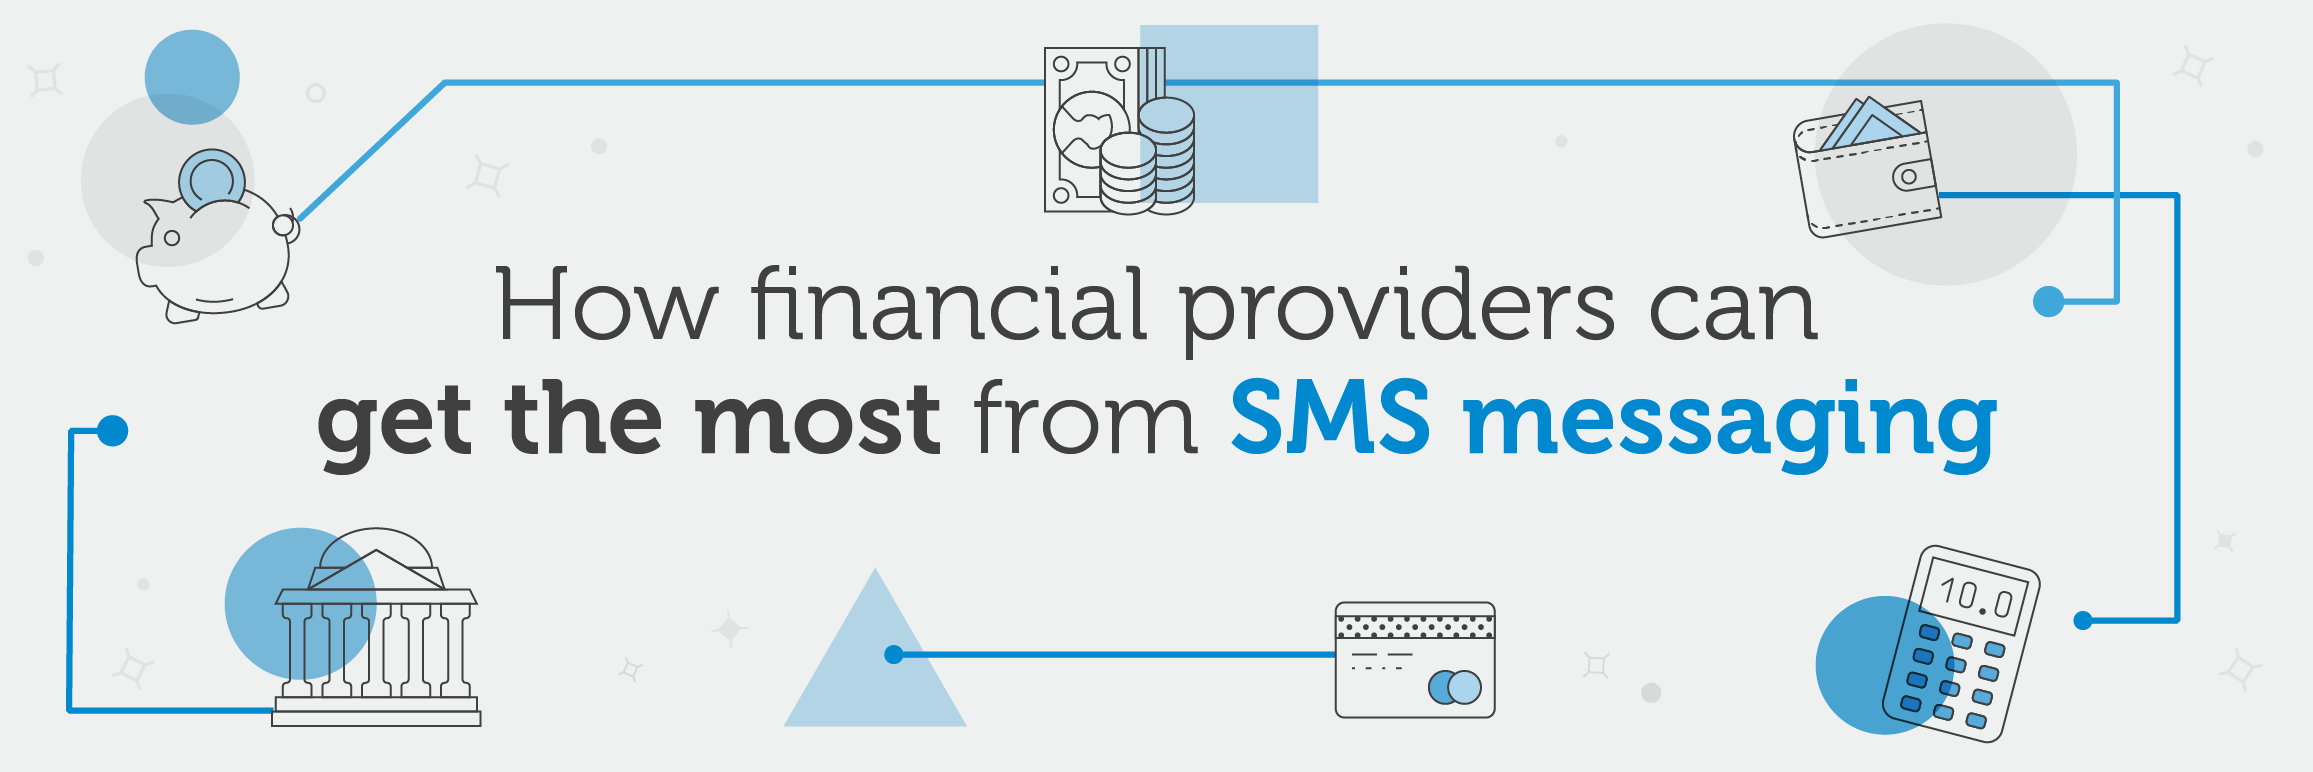 How financial providers can get the most from SMS